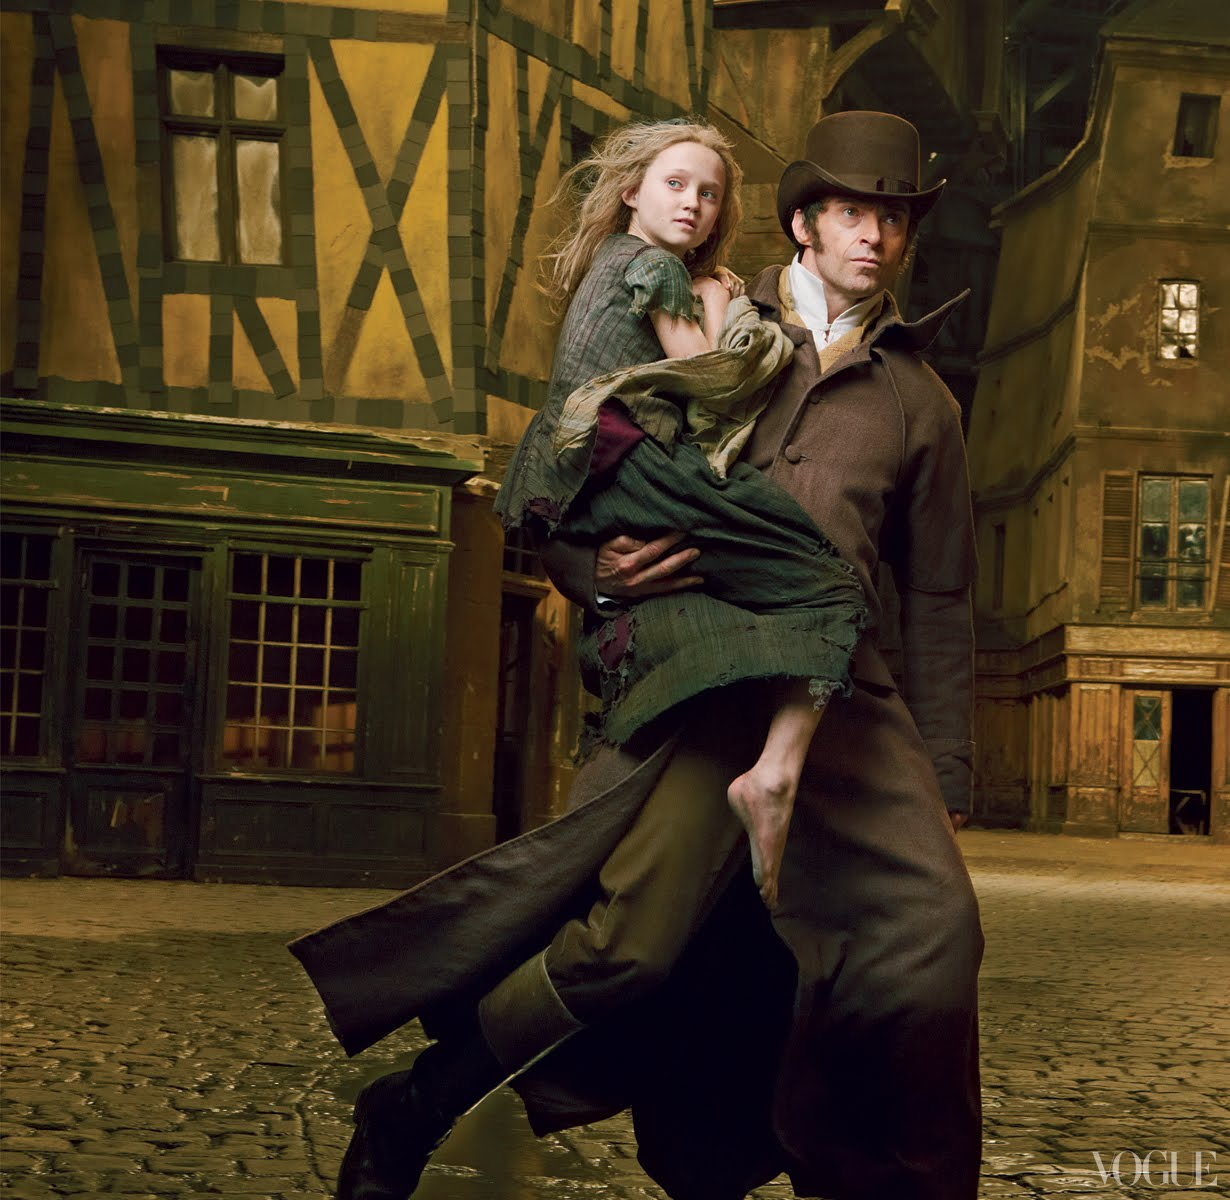 Anne Leibovitz Releases Haunting Images Of Amanda Seyfried: 8 New Les Misérables Photos Released By Vogue And A New